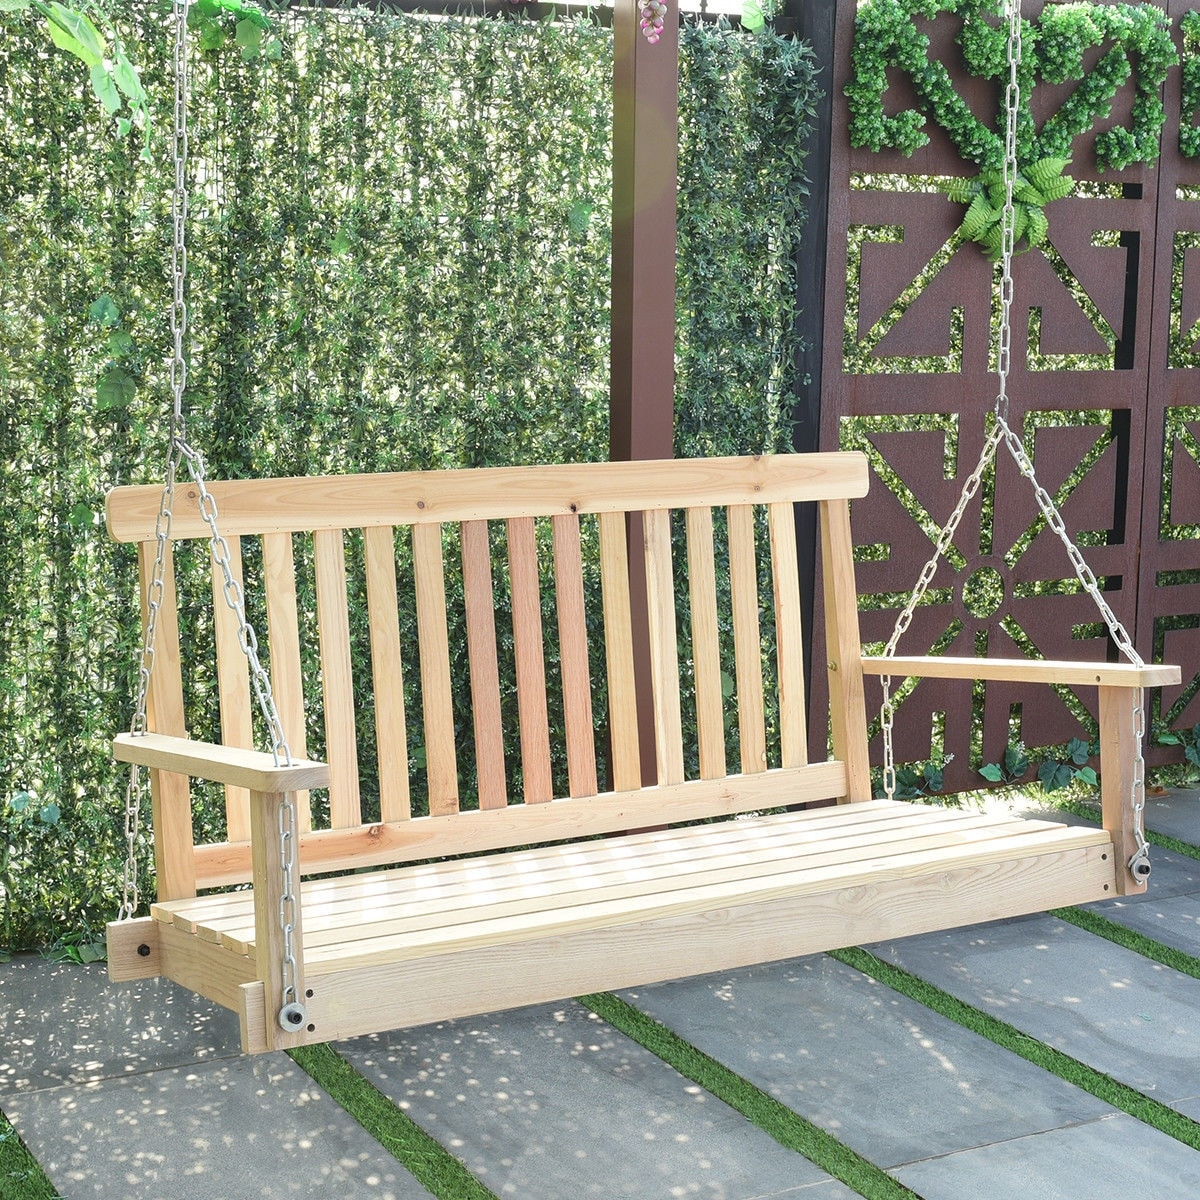 Bench Swing Part - 29: Garden Porch Swing Bench Patio Hanging Seat Chair Wooden Frame Natural  Finish